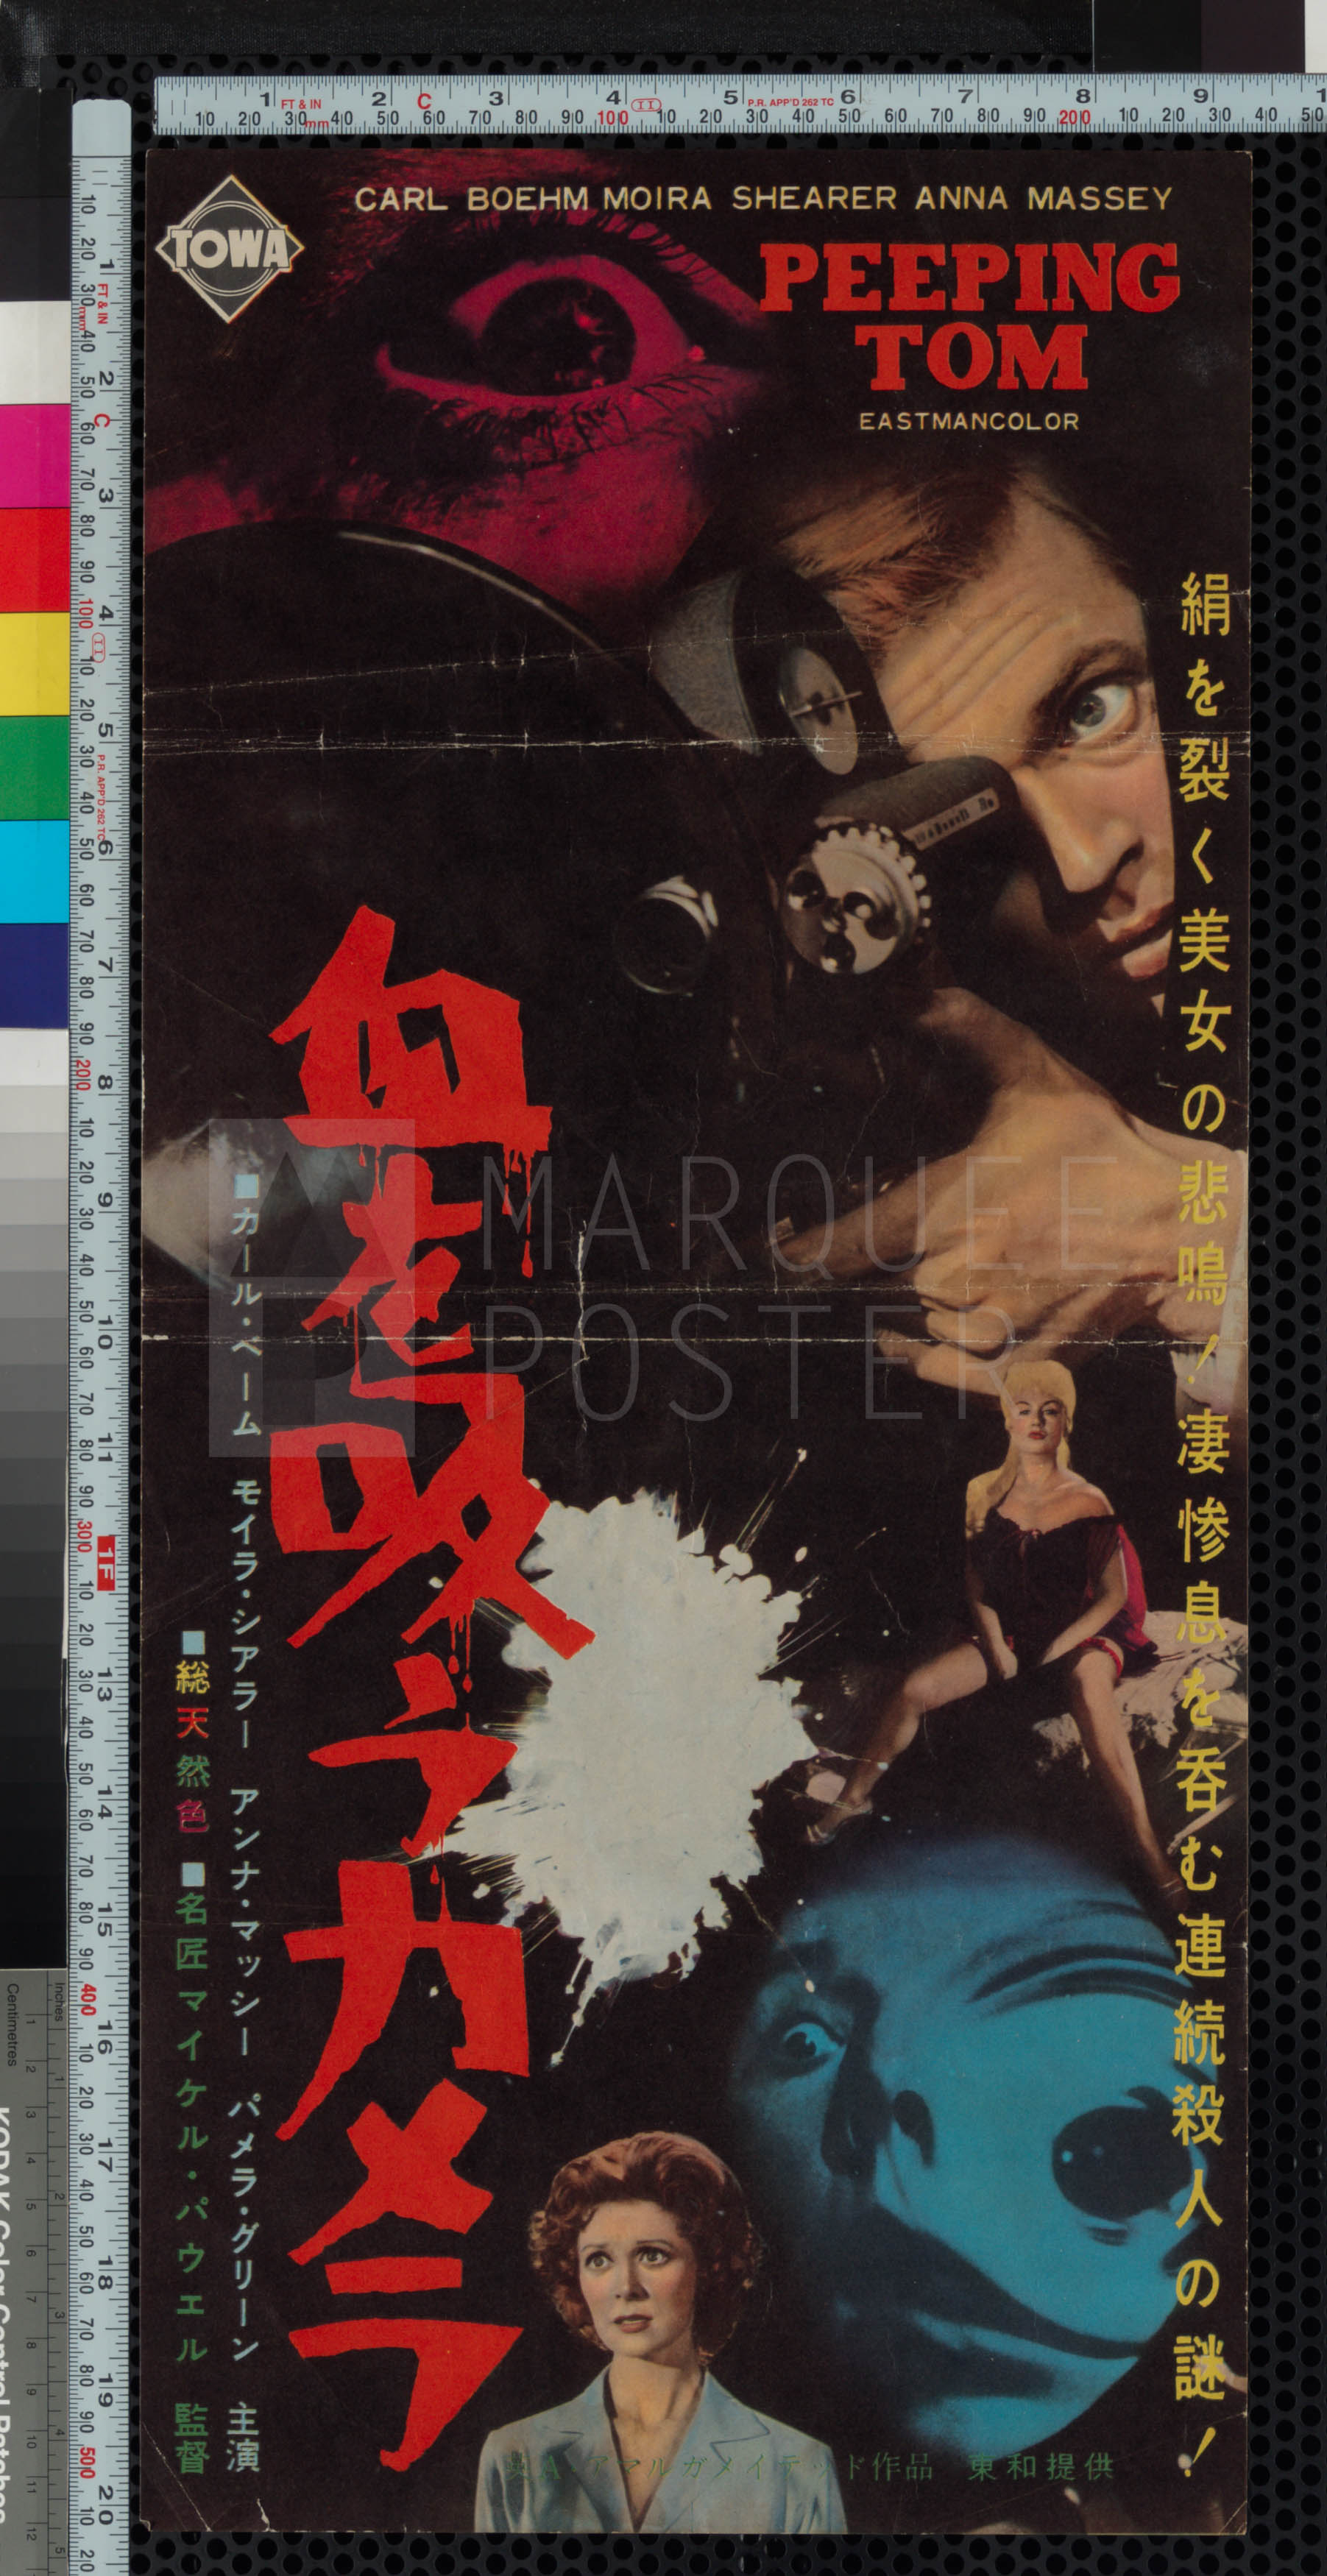 87-peeping-tom-press-japanese-b4-1961-02